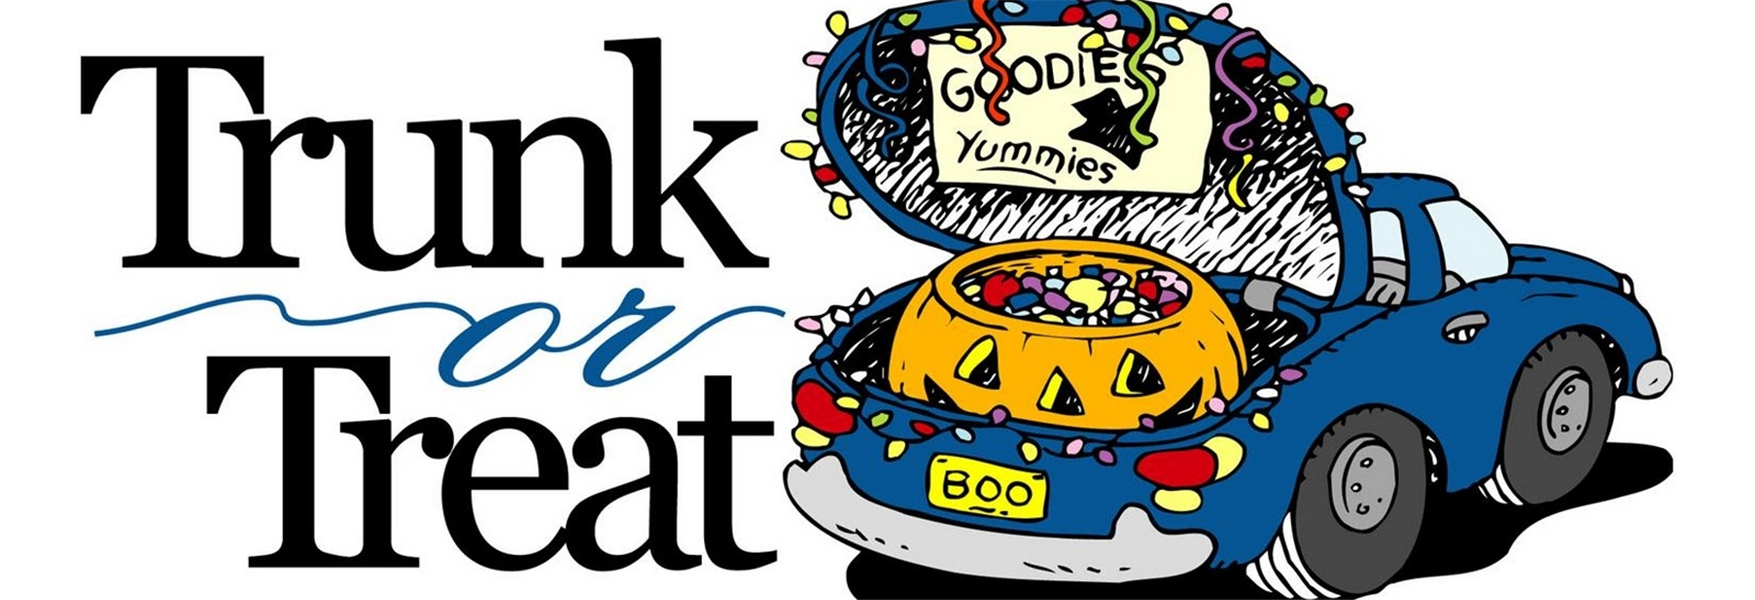 08063716-fdef-437a-8537-8a625668e1a6_Trunk_or_Treat_Logo.png